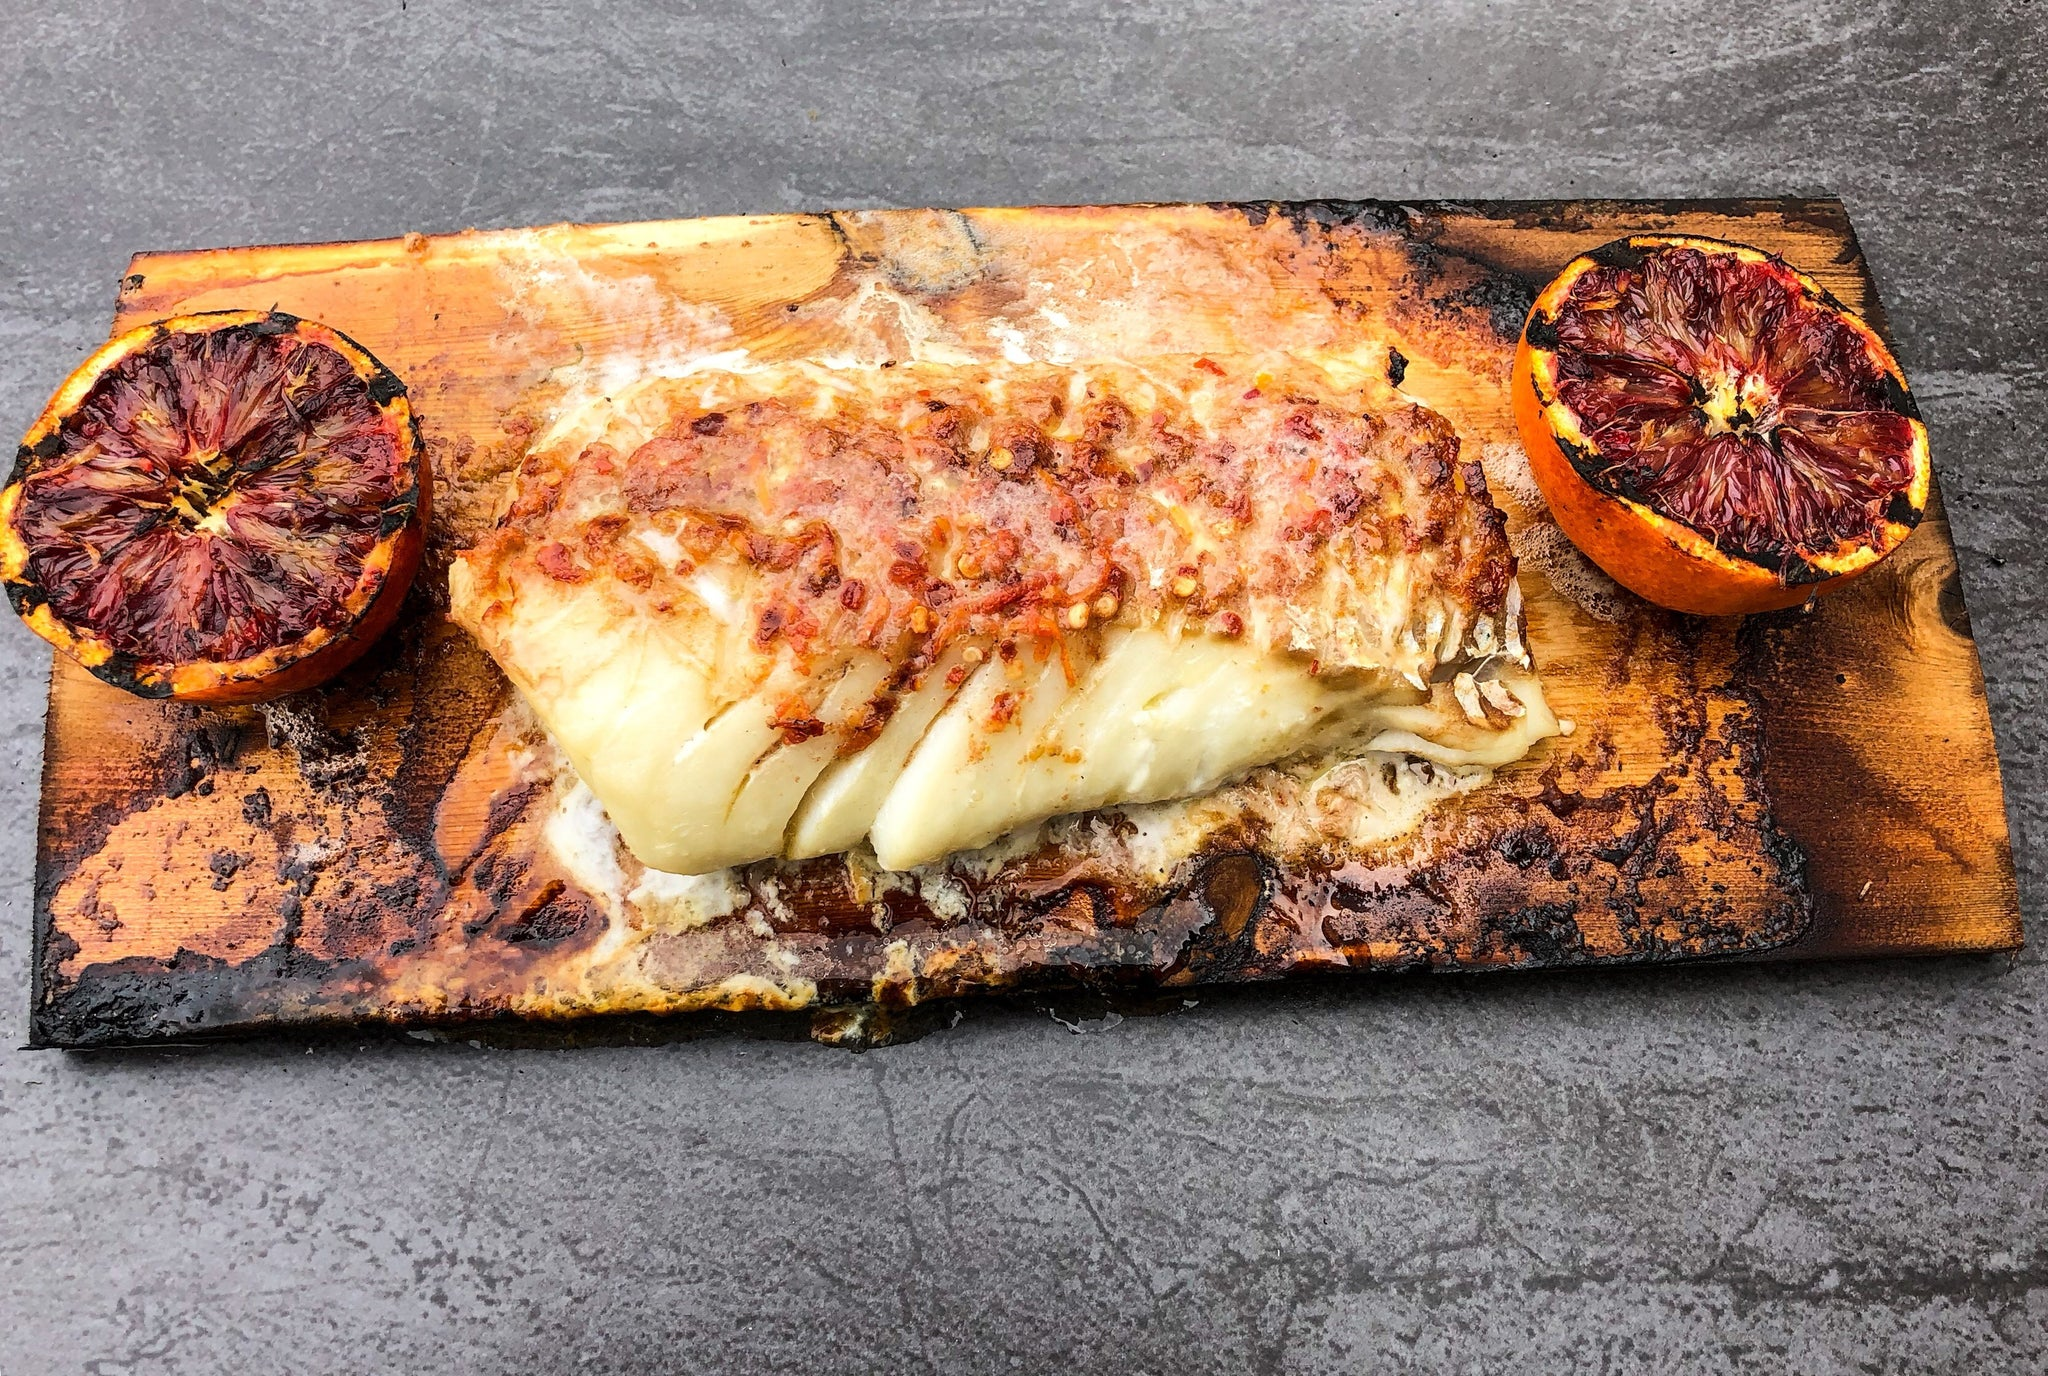 Cod fillet with Red Pepper-Blood Orange Butter on Chardonnay infused Cedar Plank